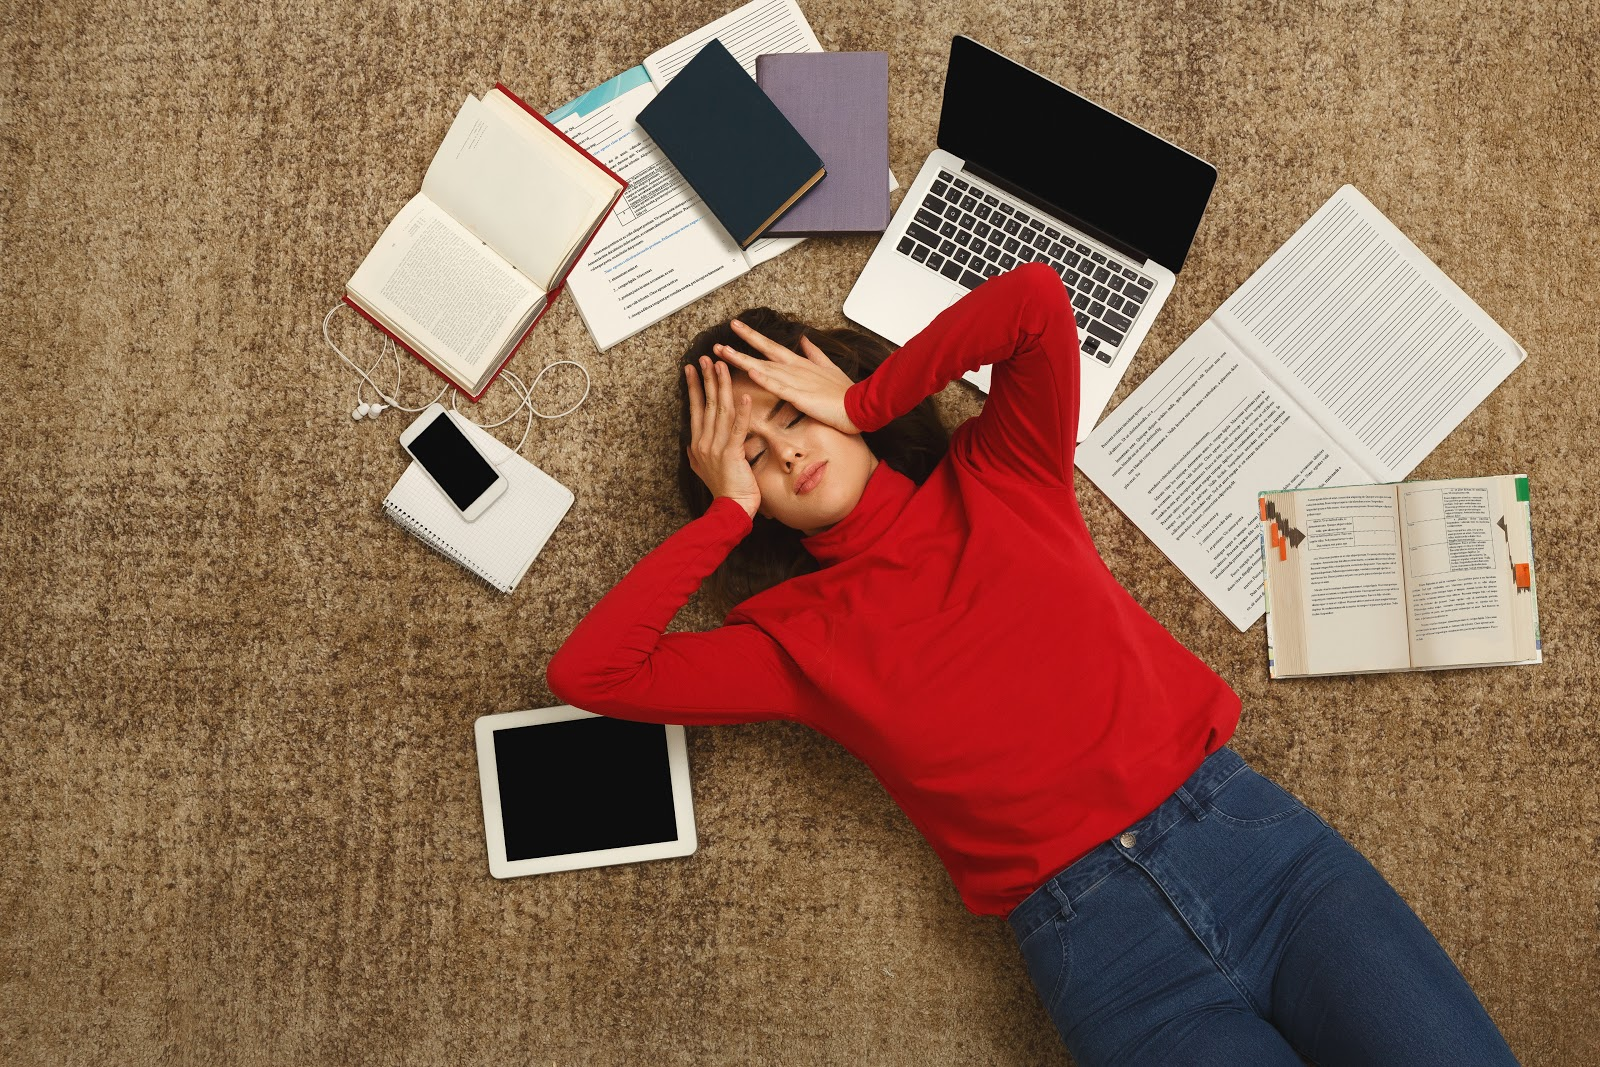 It is common for students to avoid homework in subjects they particularly struggle with